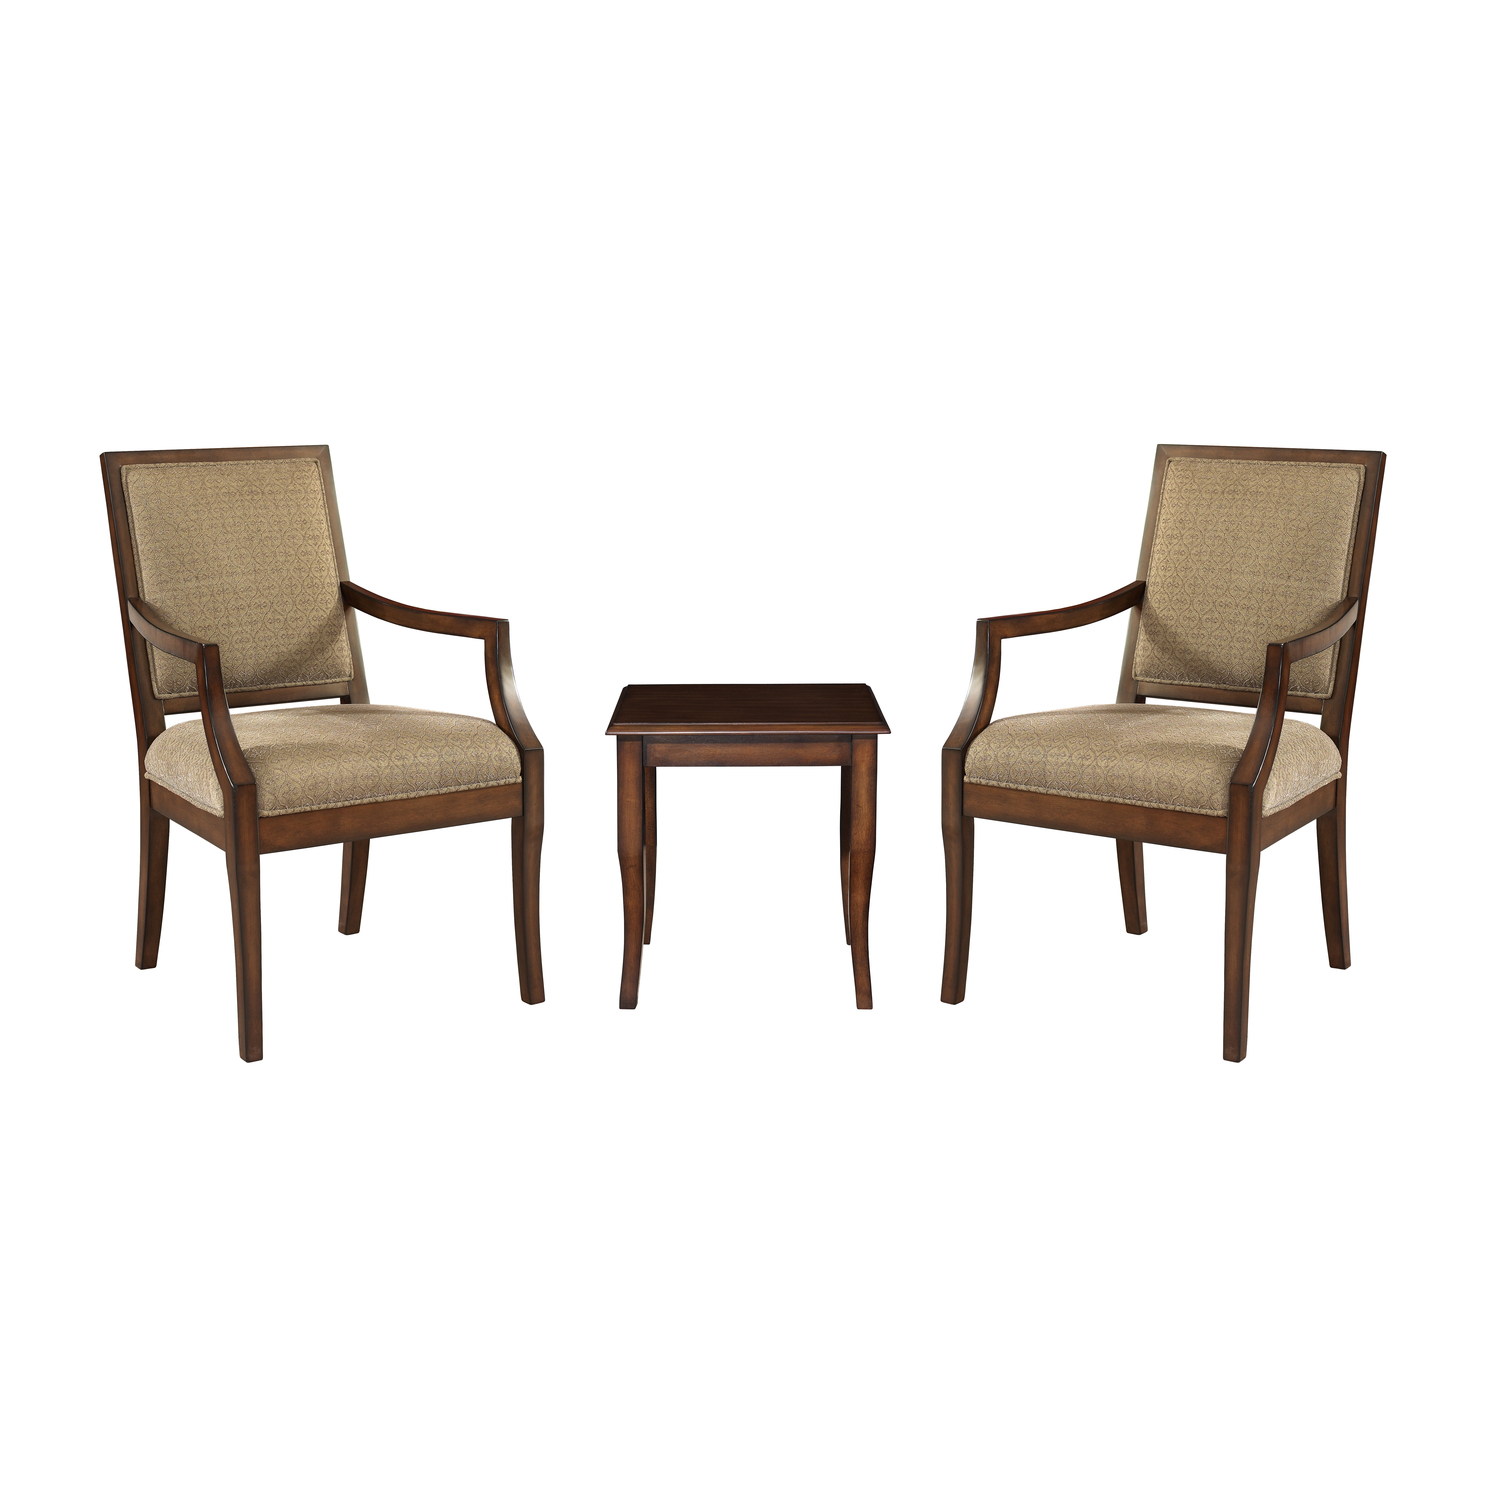 3Pc Set  2 RectBack Accent Chairs with 1 Light Cherry